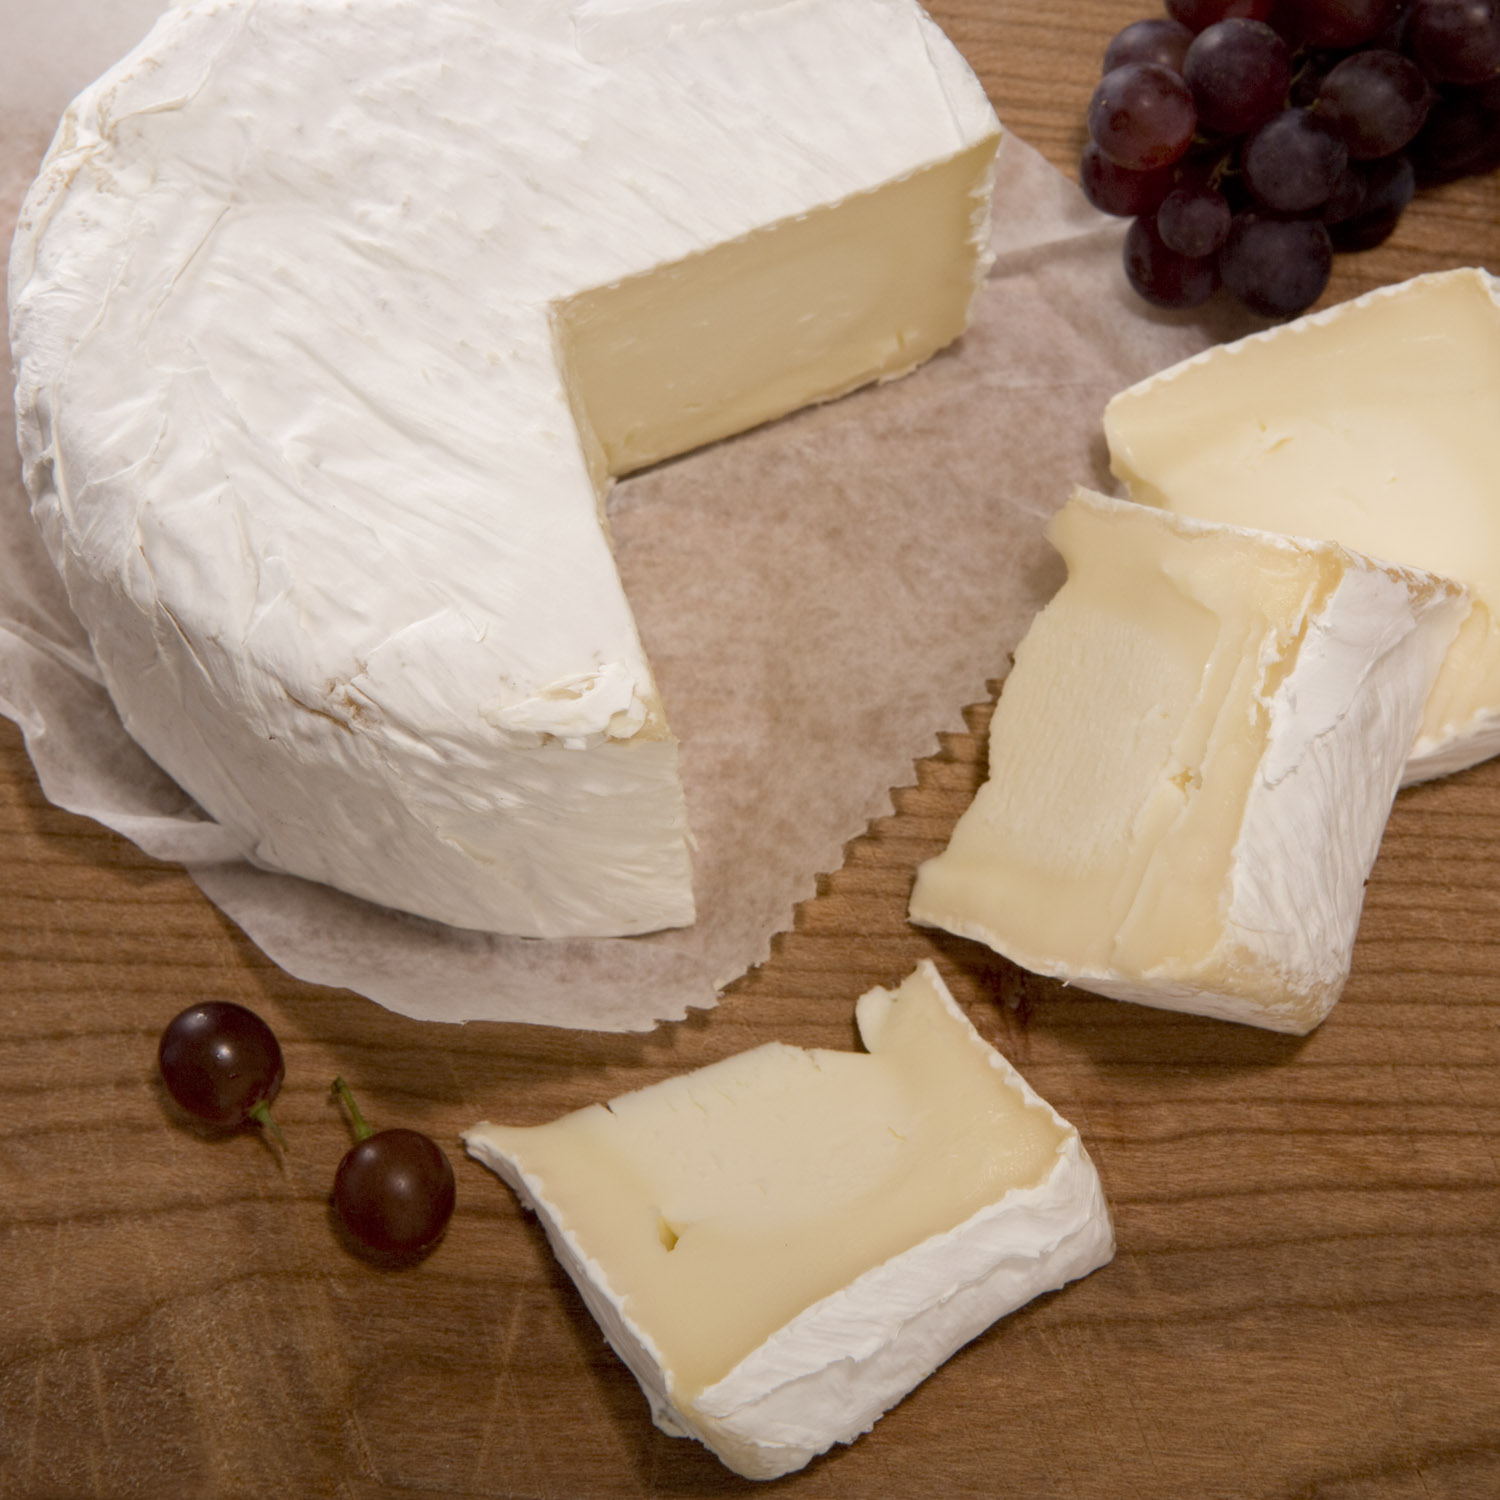 https://blog.murrayscheese.com/wp-content/uploads/2017/03/brie_creamy_murrays_cave_aged_nettle_meadow_kunik.jpg